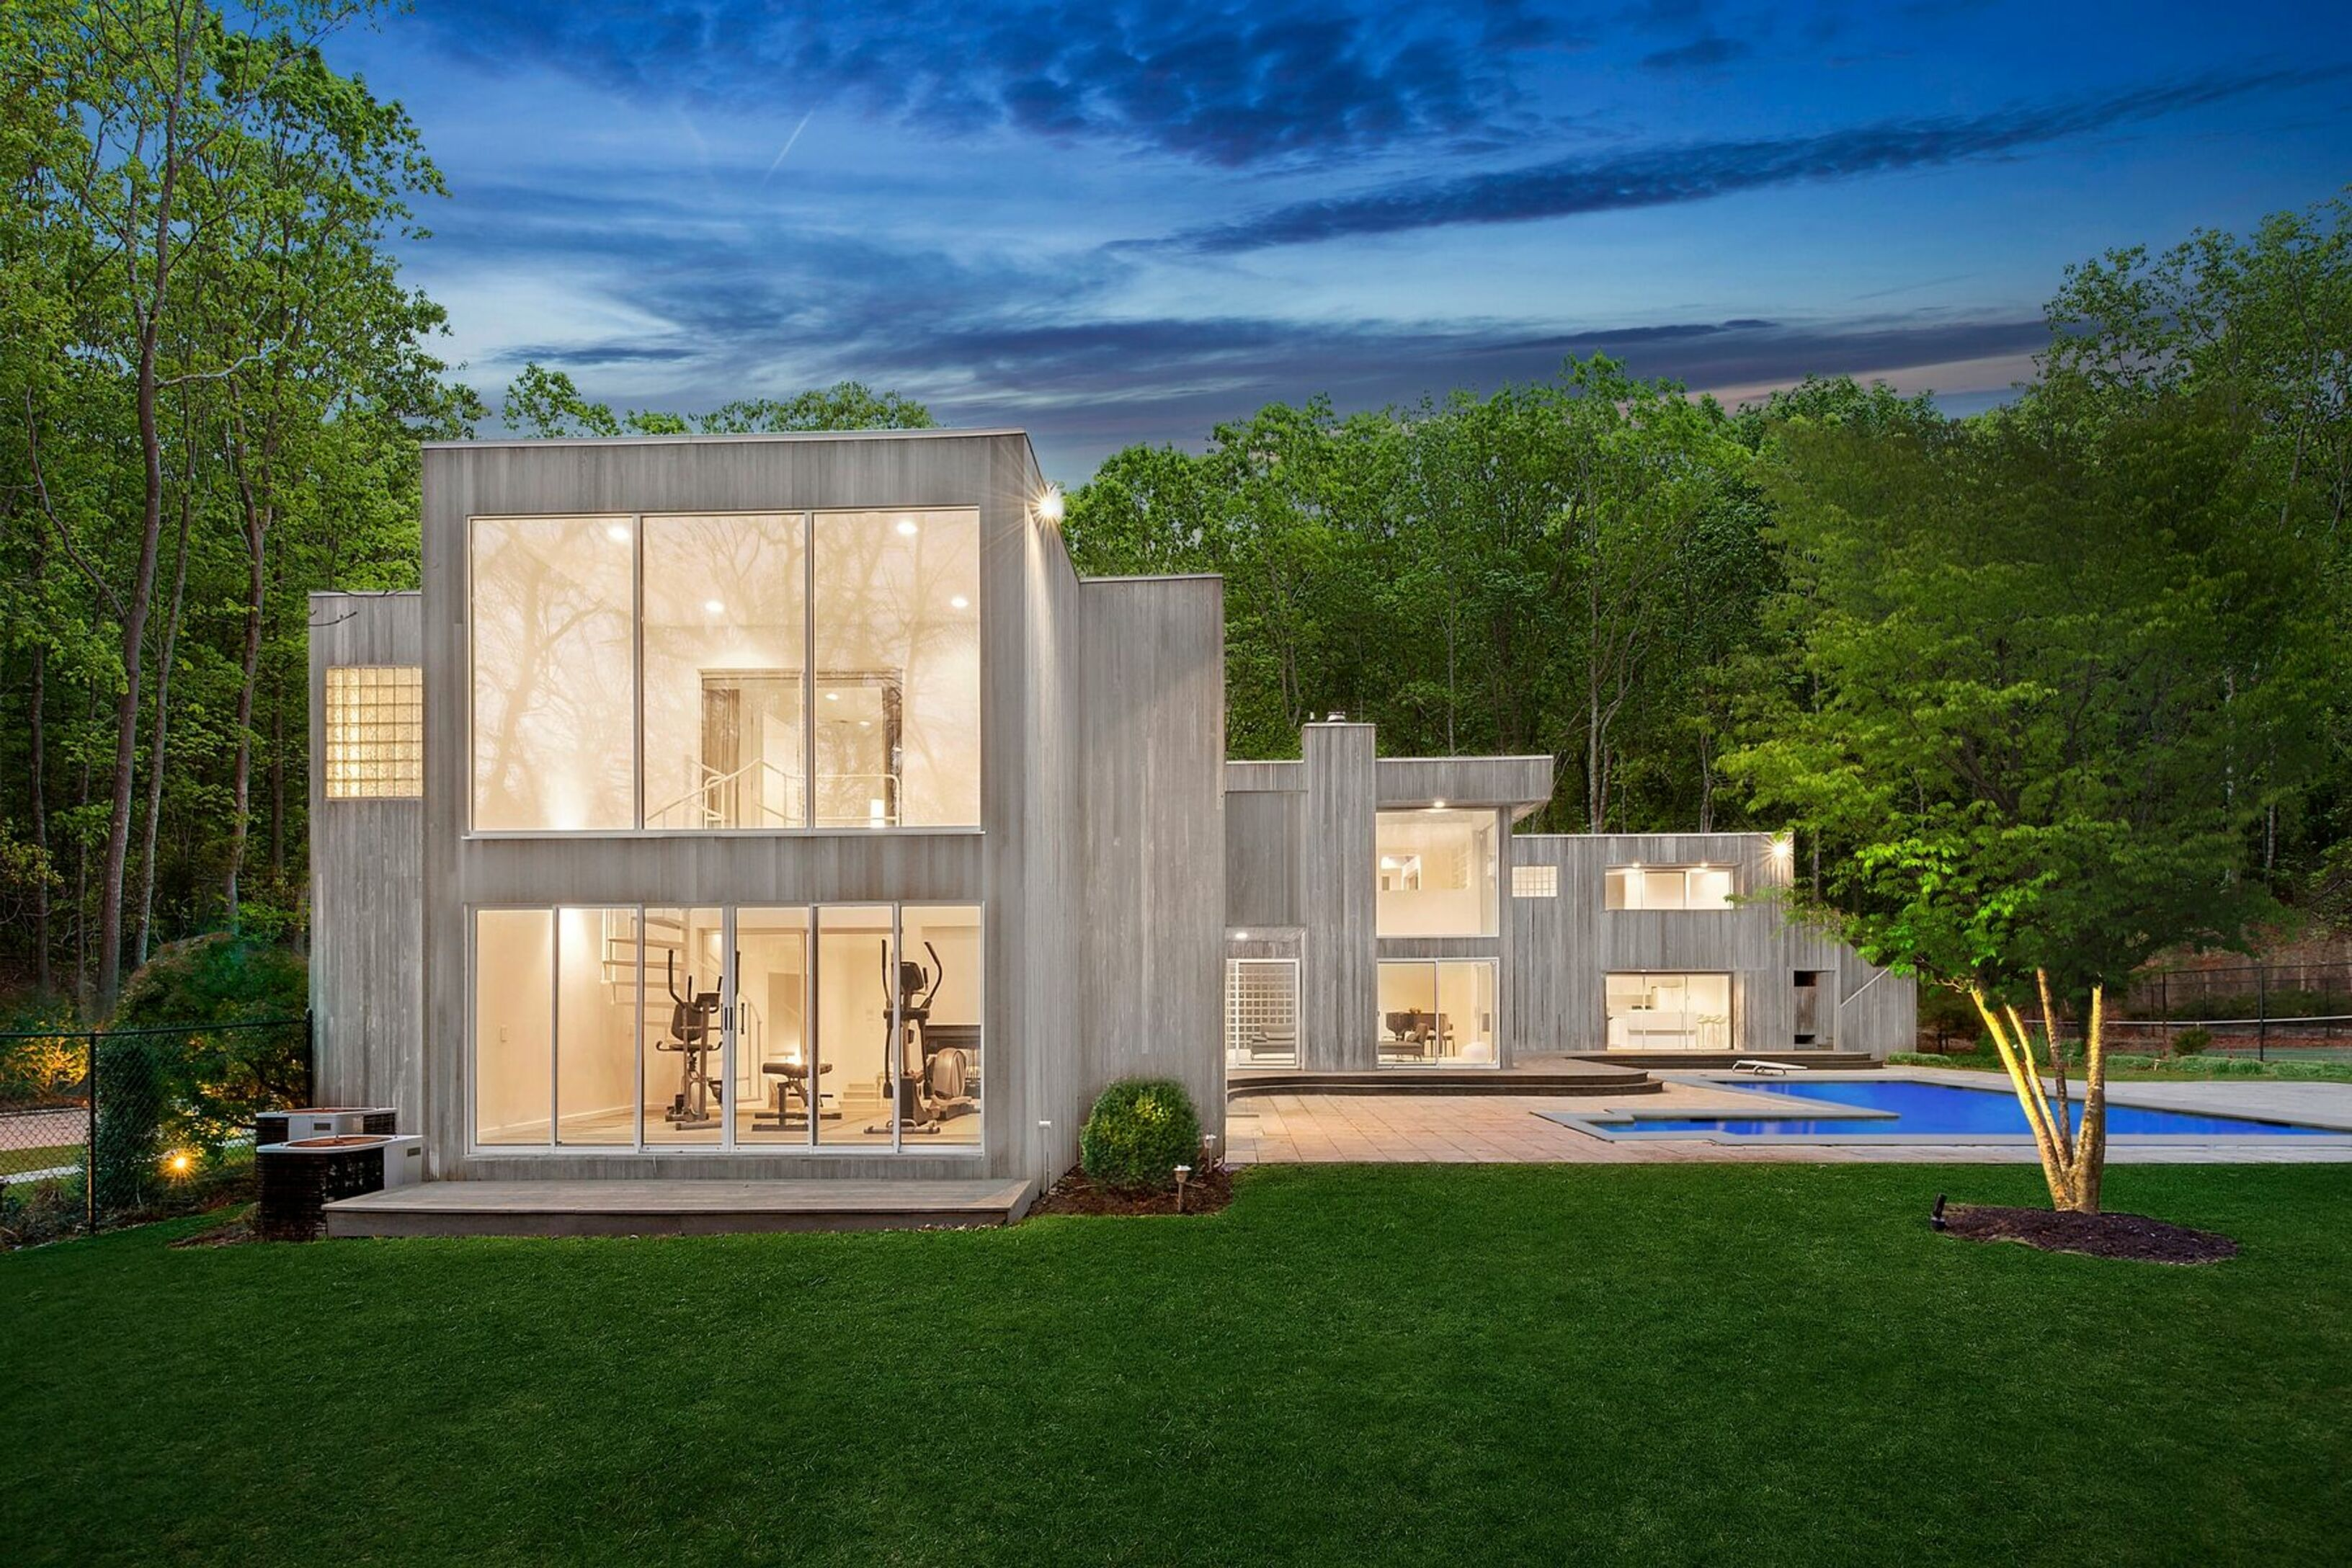 2828 Deerfield Rd - Sag Harbor, New York